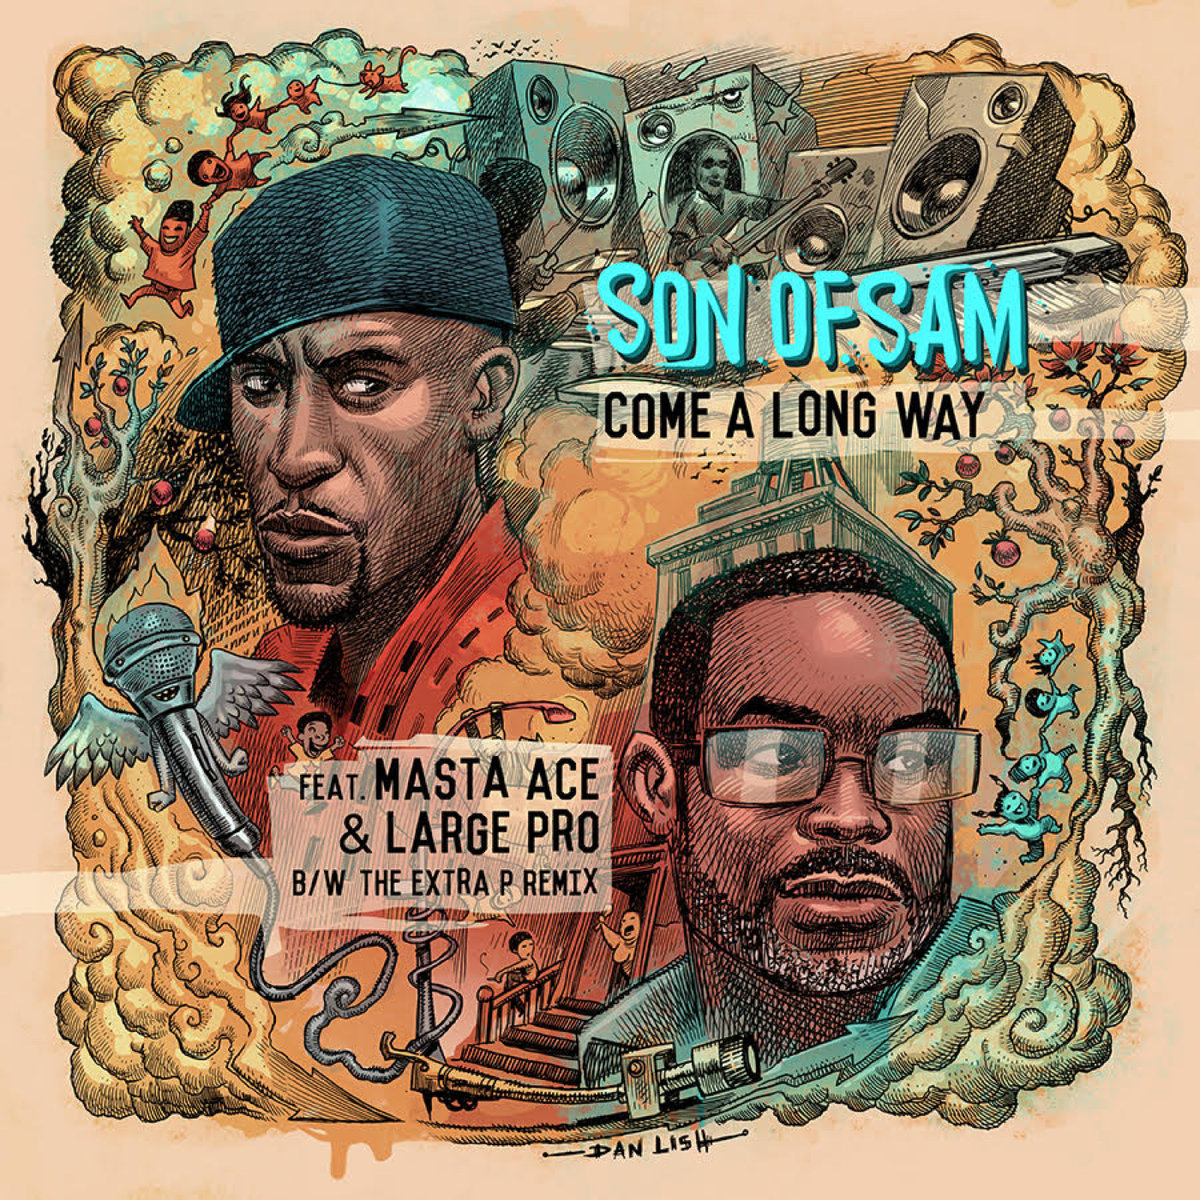 Вышел винил Masta Ace & Large Pro «Come A Long Way» с живым бэндом Son Of Sam